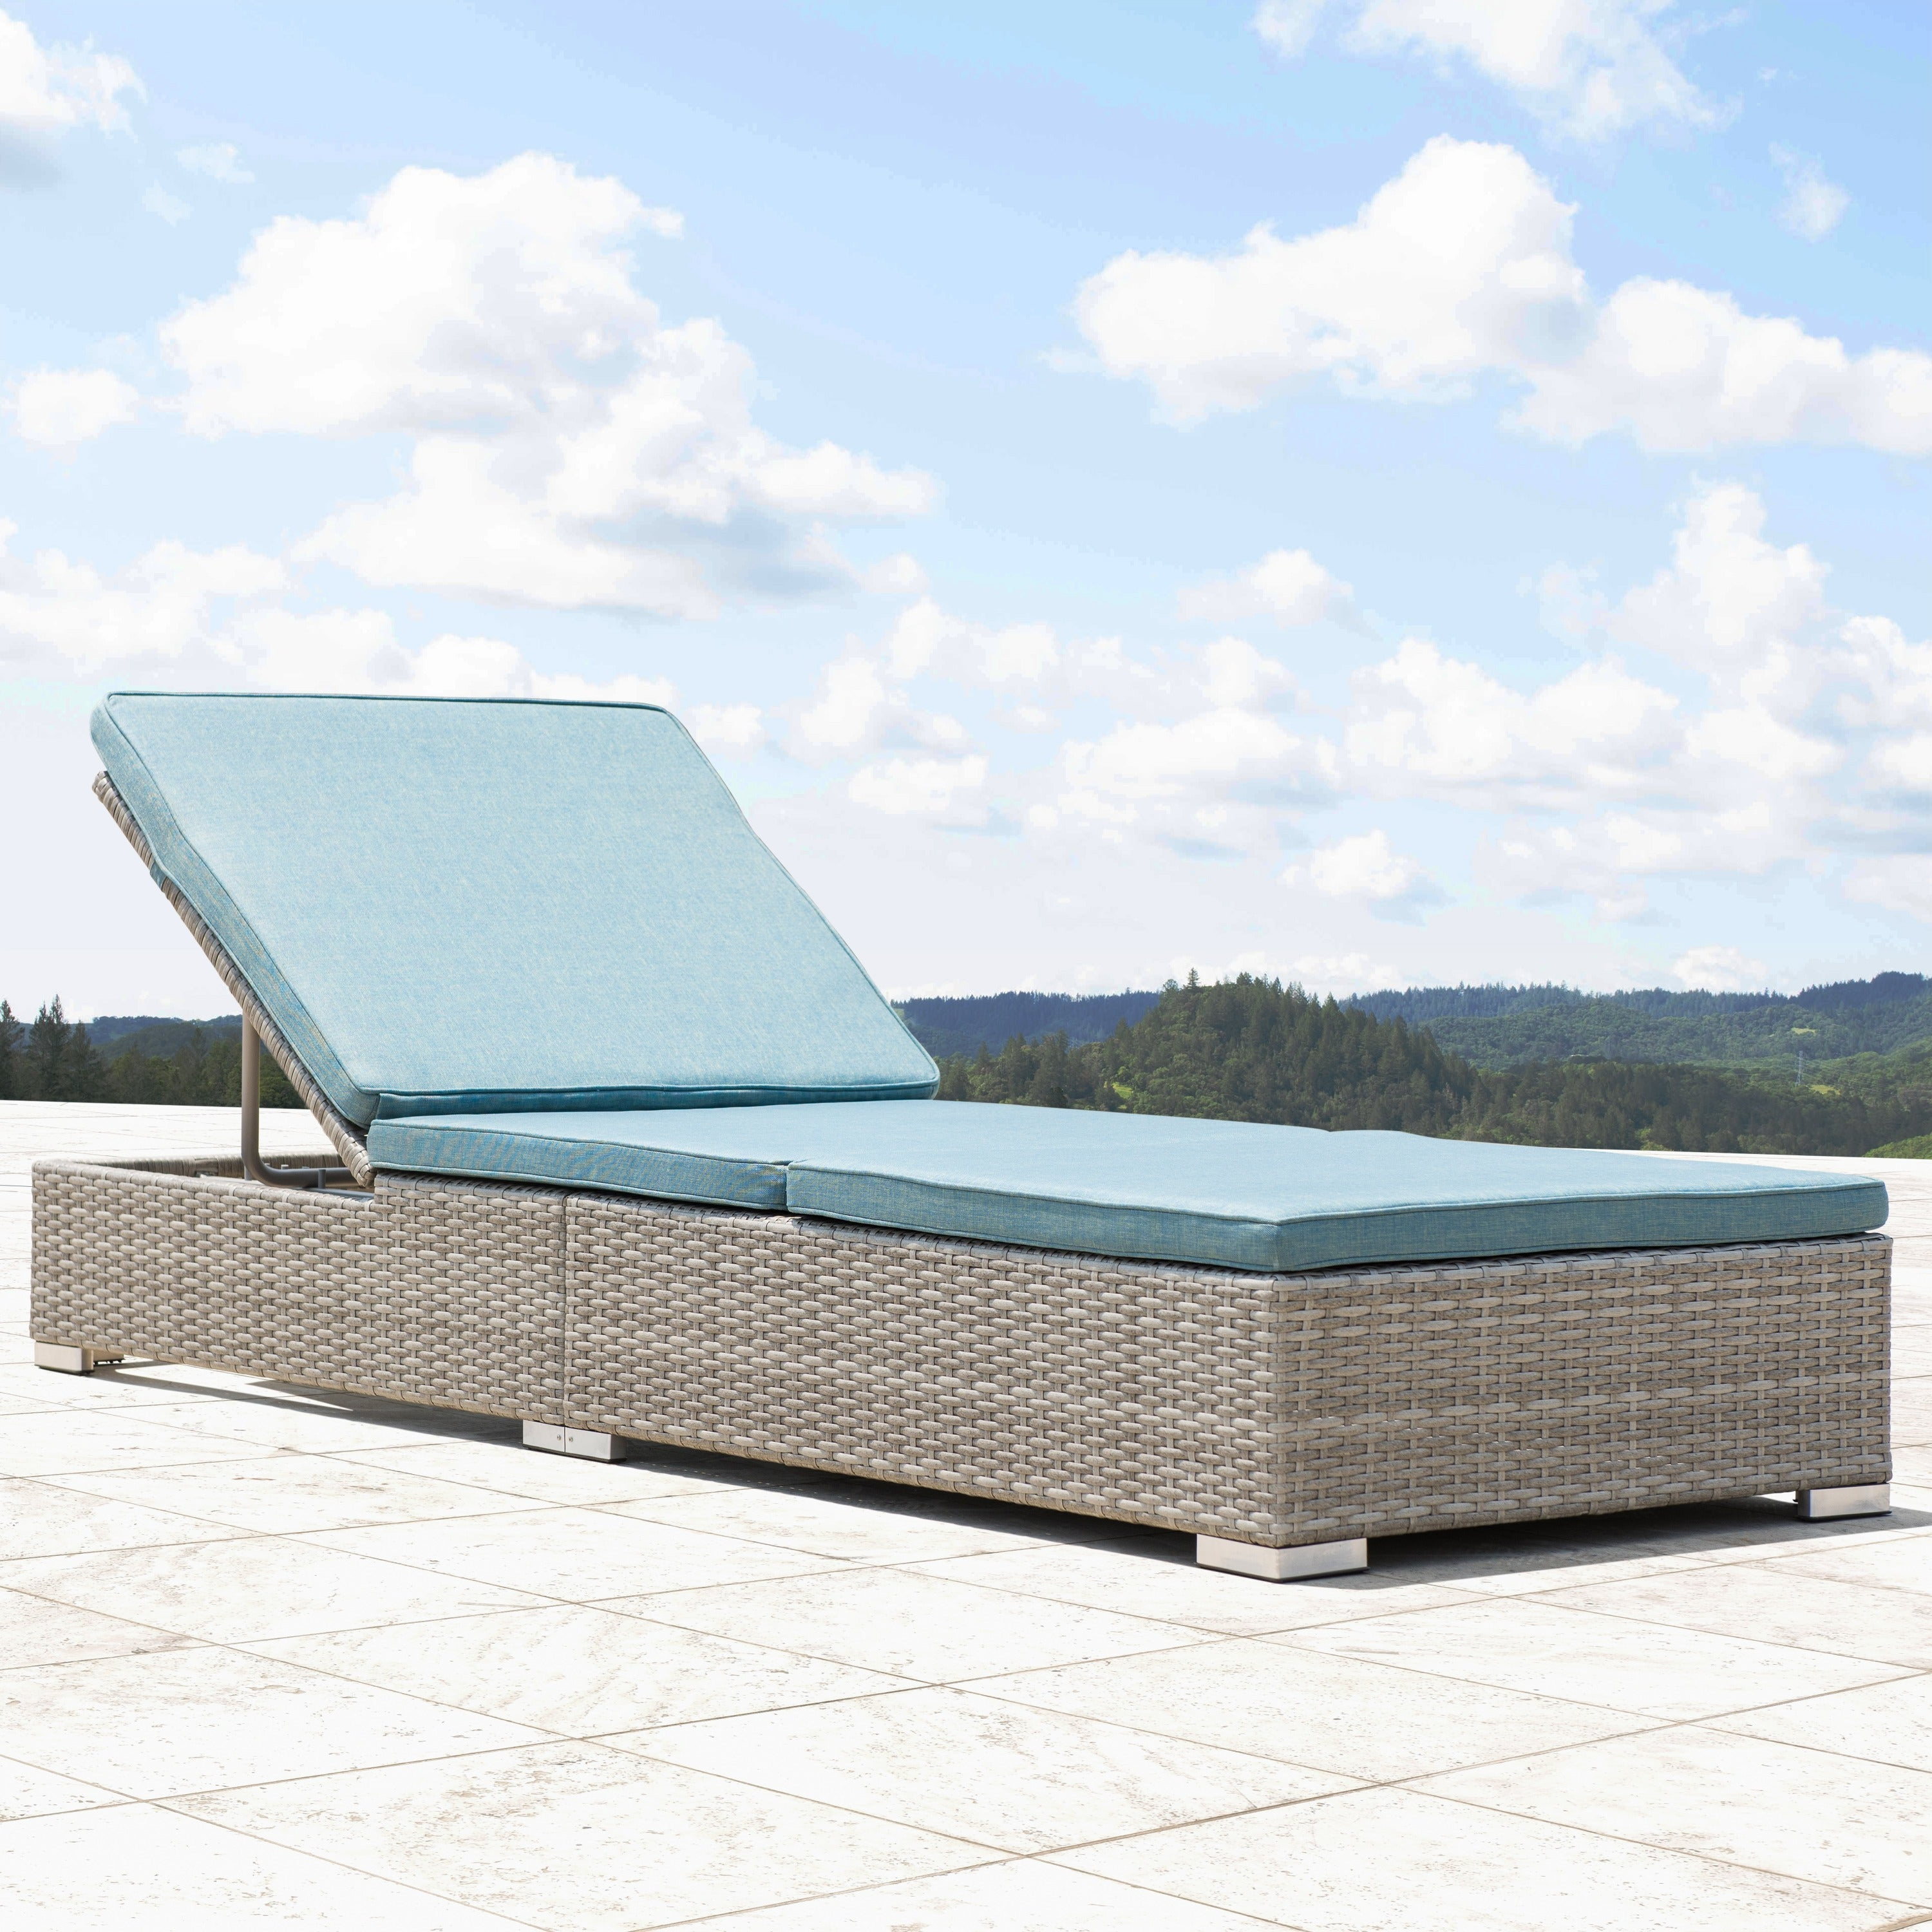 Preferred Outdoor Wicker Adjustable Chaise Lounges With Cushions In Corvus Outdoor Wicker Adjustable Chaise Lounges With Cushions (Set Of 2) (Gallery 17 of 25)